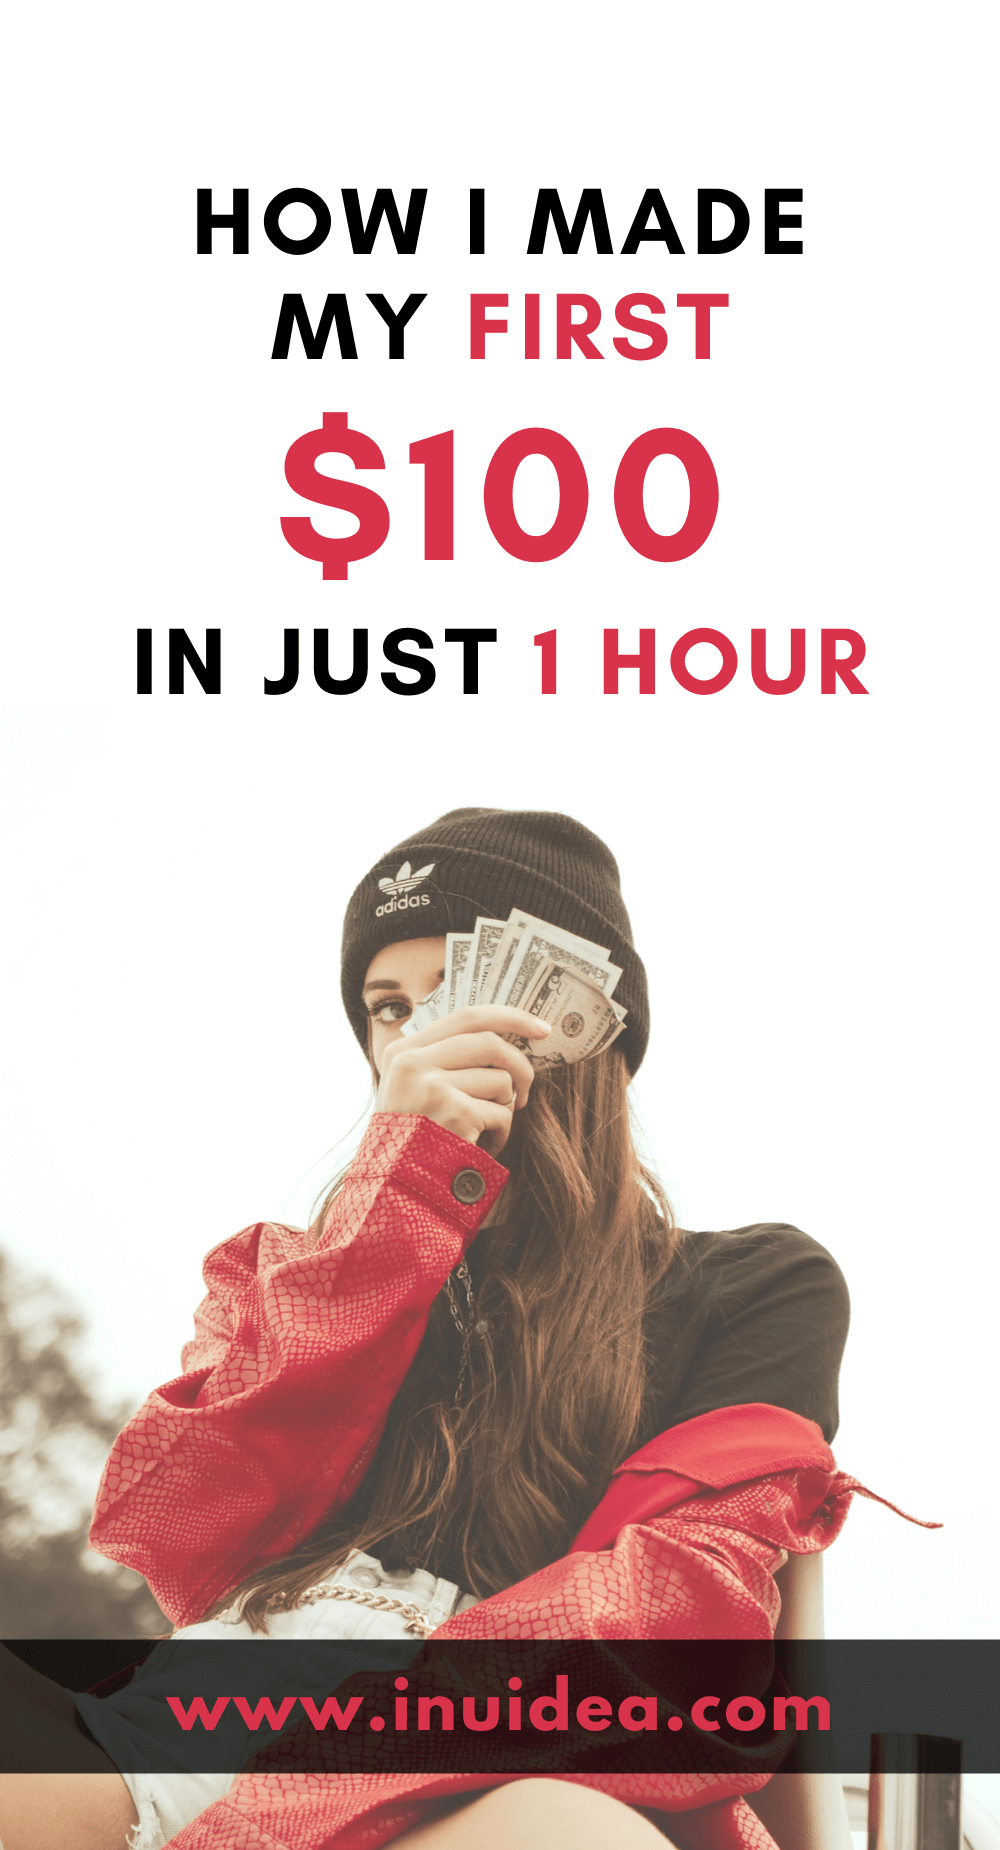 How I Made My First $100 in Just 1 Hour